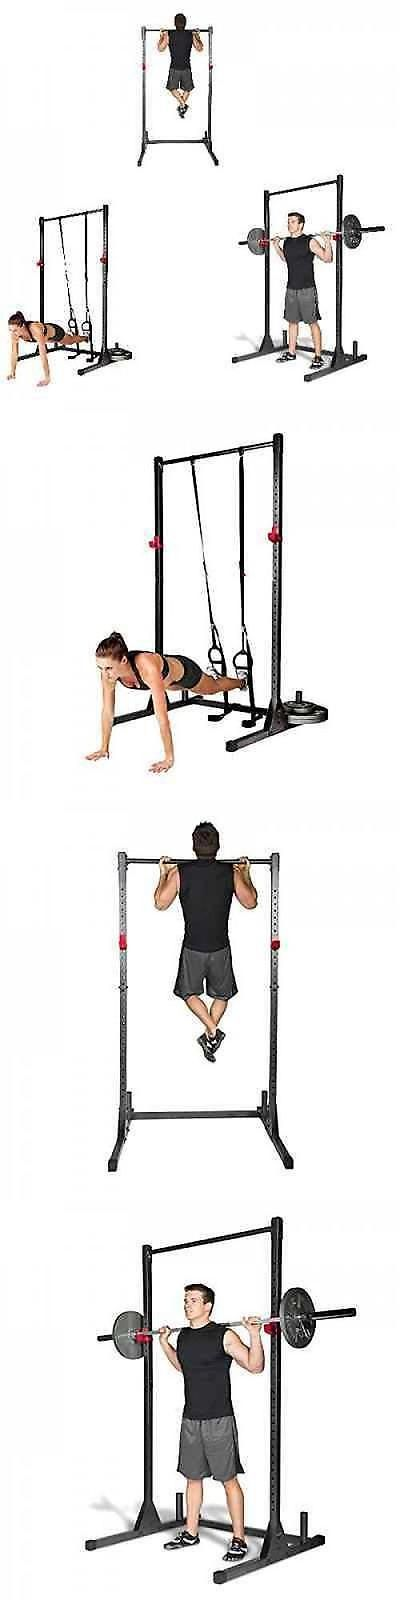 Pull Up Bars 179816: Home Gym Pull Up Bar Power Rack Exercise Stand Body Building Workout Fitness New -> BUY IT NOW ONLY: $110.68 on eBay!